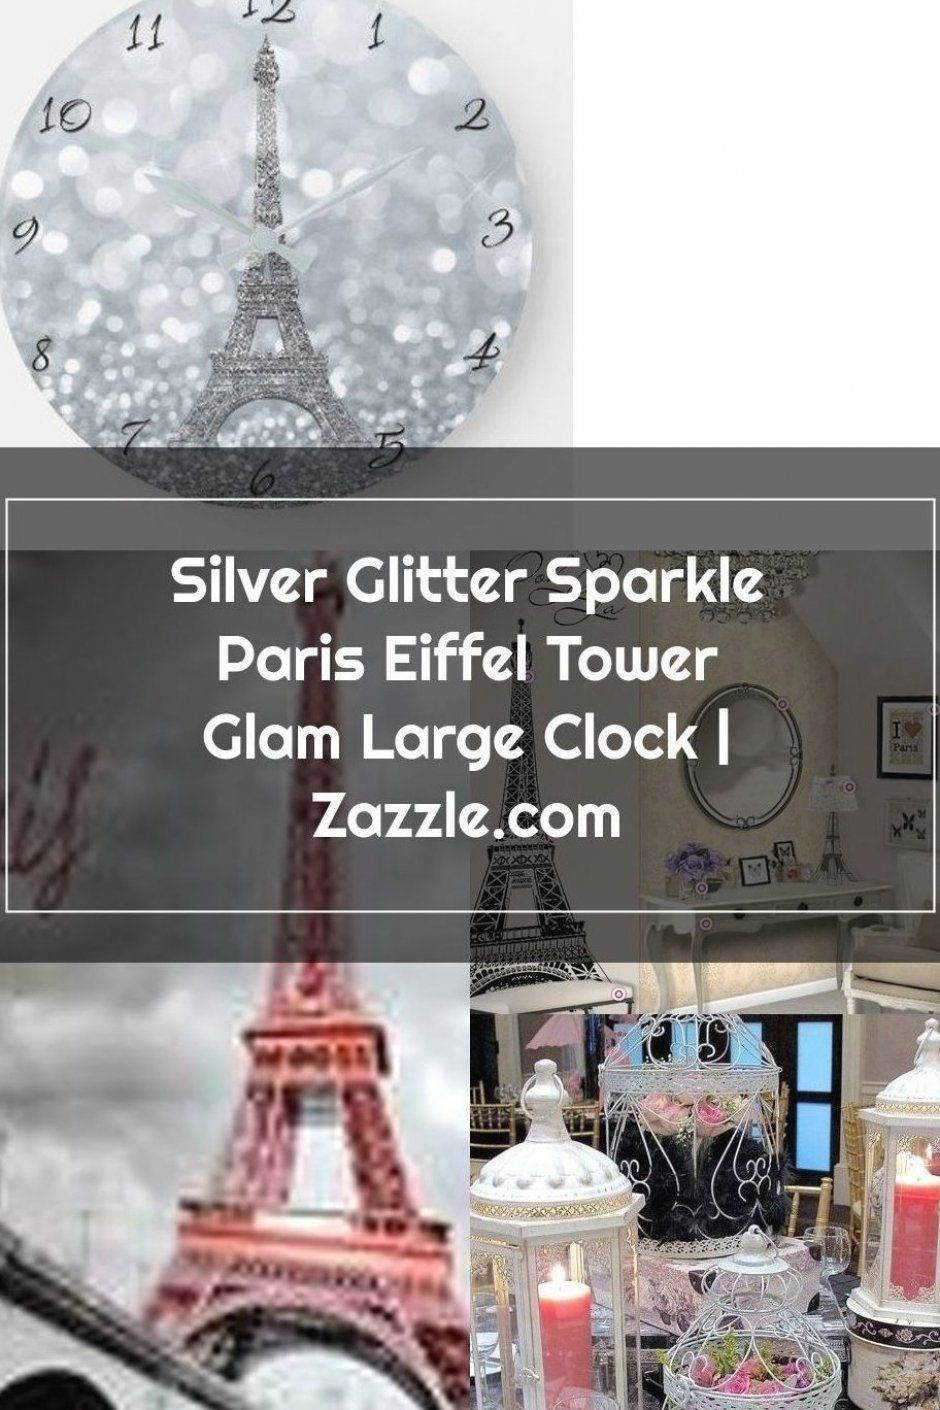 Silver Glitter Sparkle Paris Eiffel Tower Glam Large Clock Homedecor Homedecoration Easyhomedecor In 2020 Custom Made Furniture Easy Home Decor Colorful Rugs